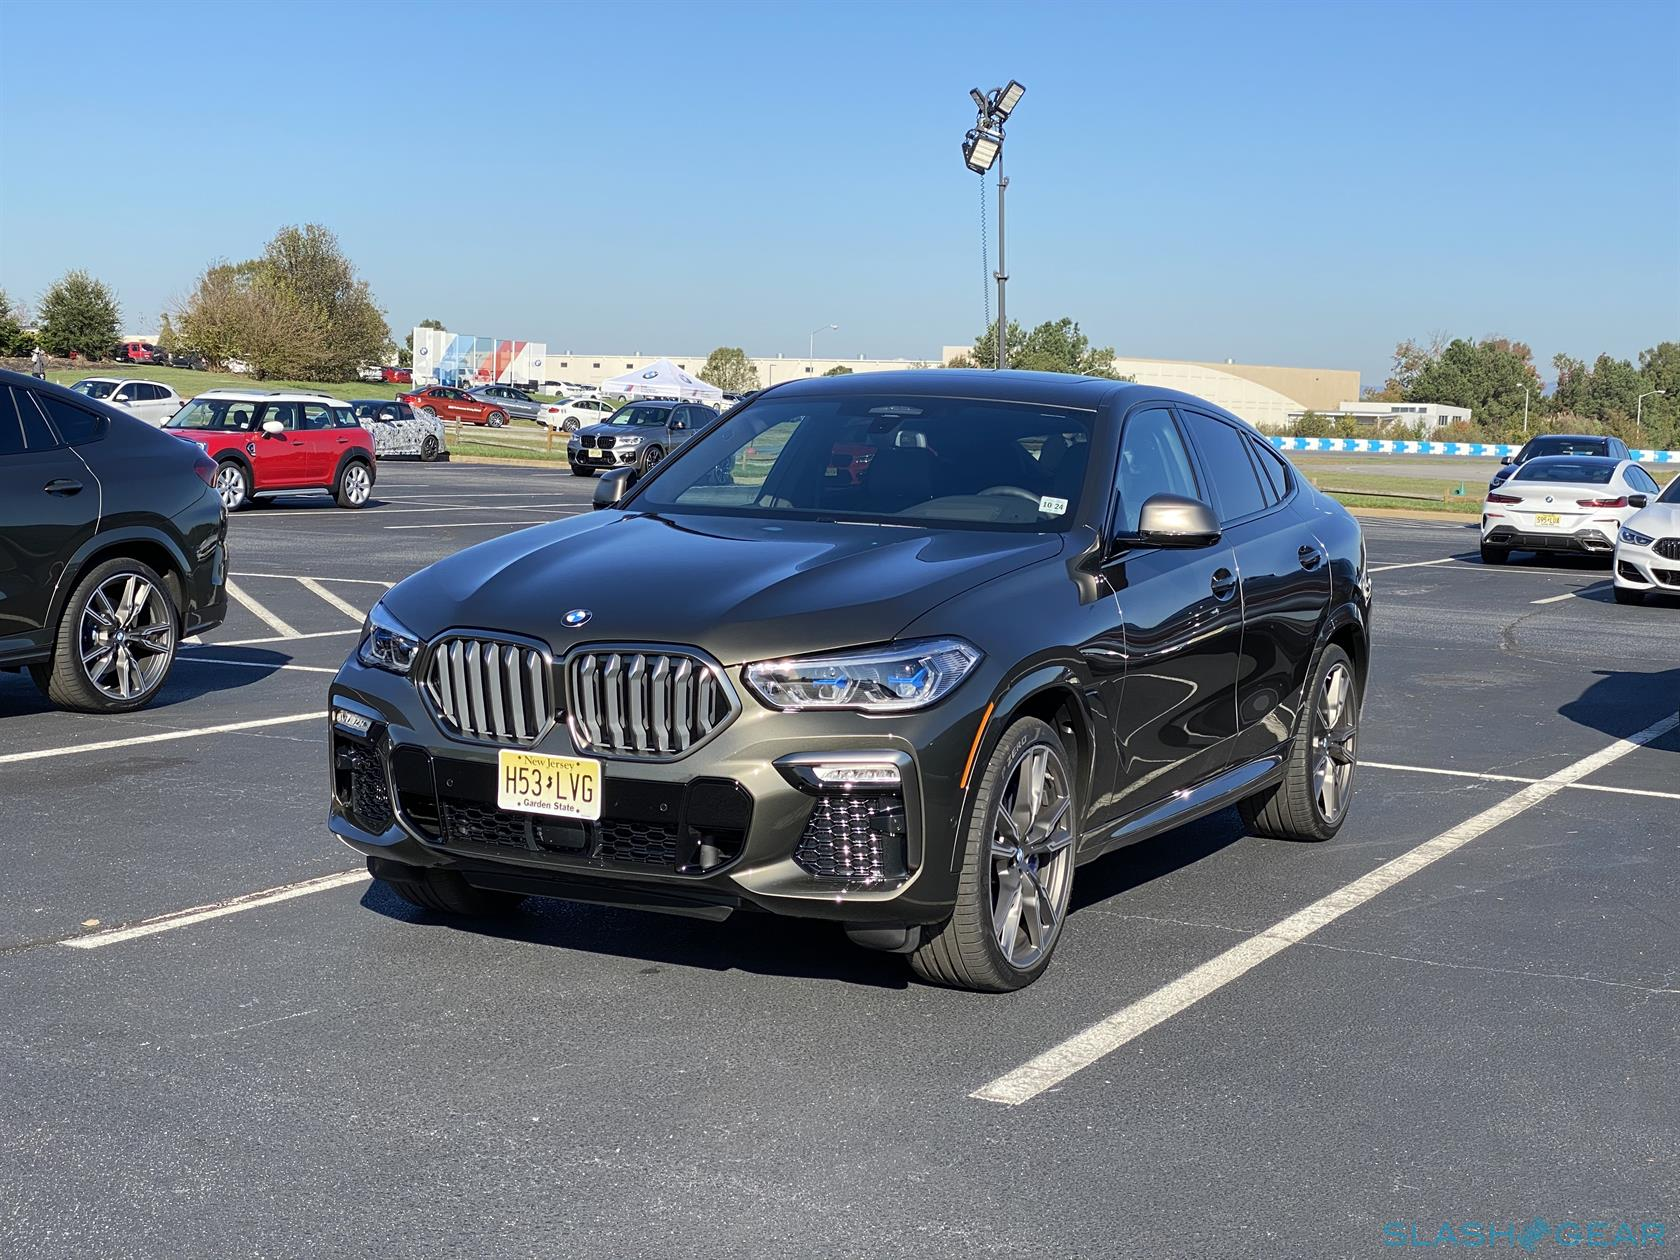 2020 bmw x6 first drive review: nobody tell this suv it's